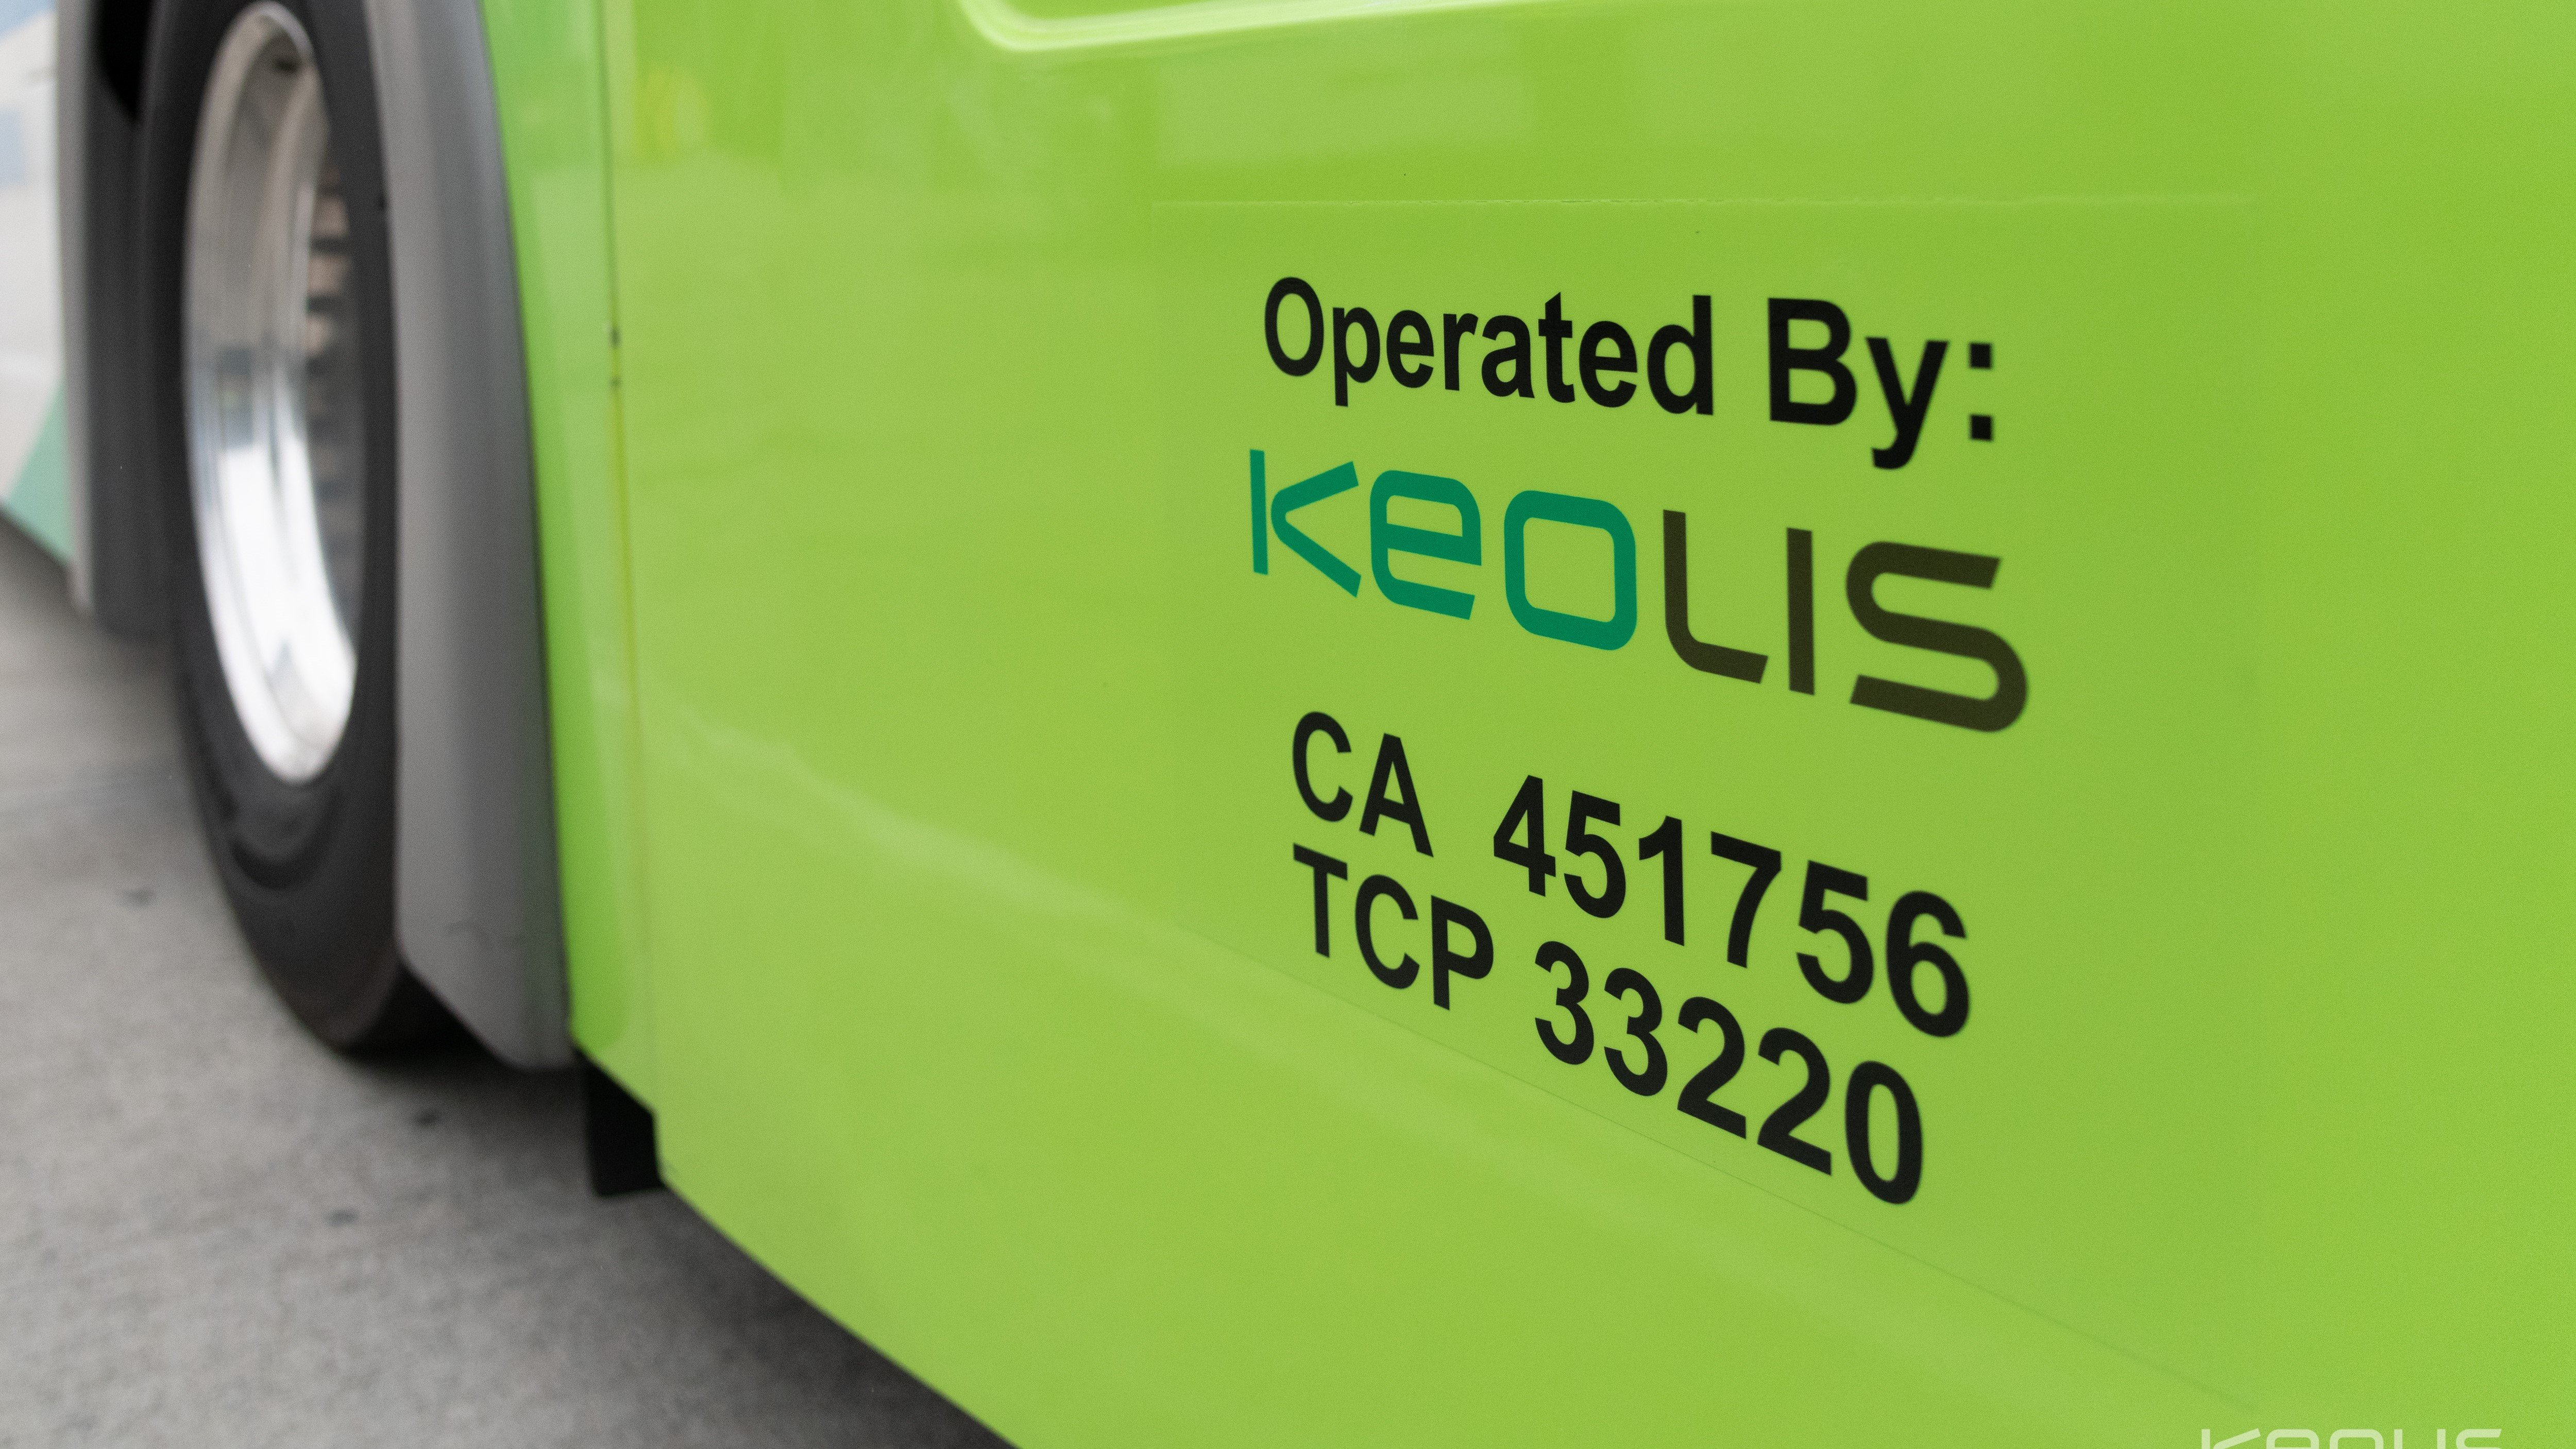 Foothill_Bus_Operated by Keolis Logo-1